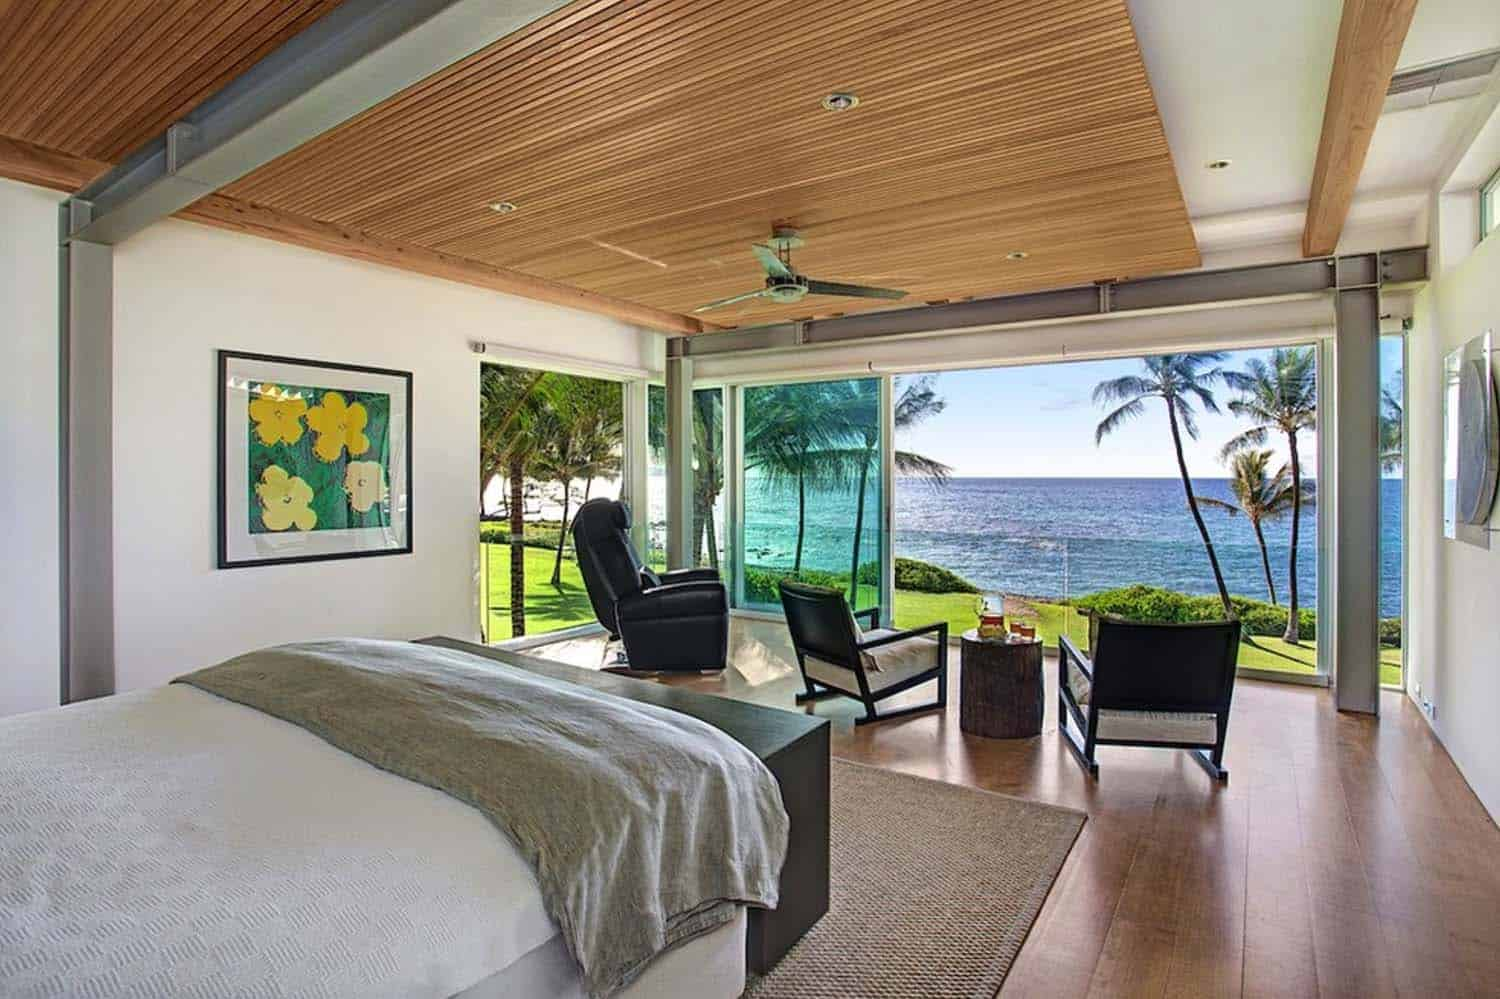 Tropical Maui Residence-Bossley Architects-12-1 Kindesign